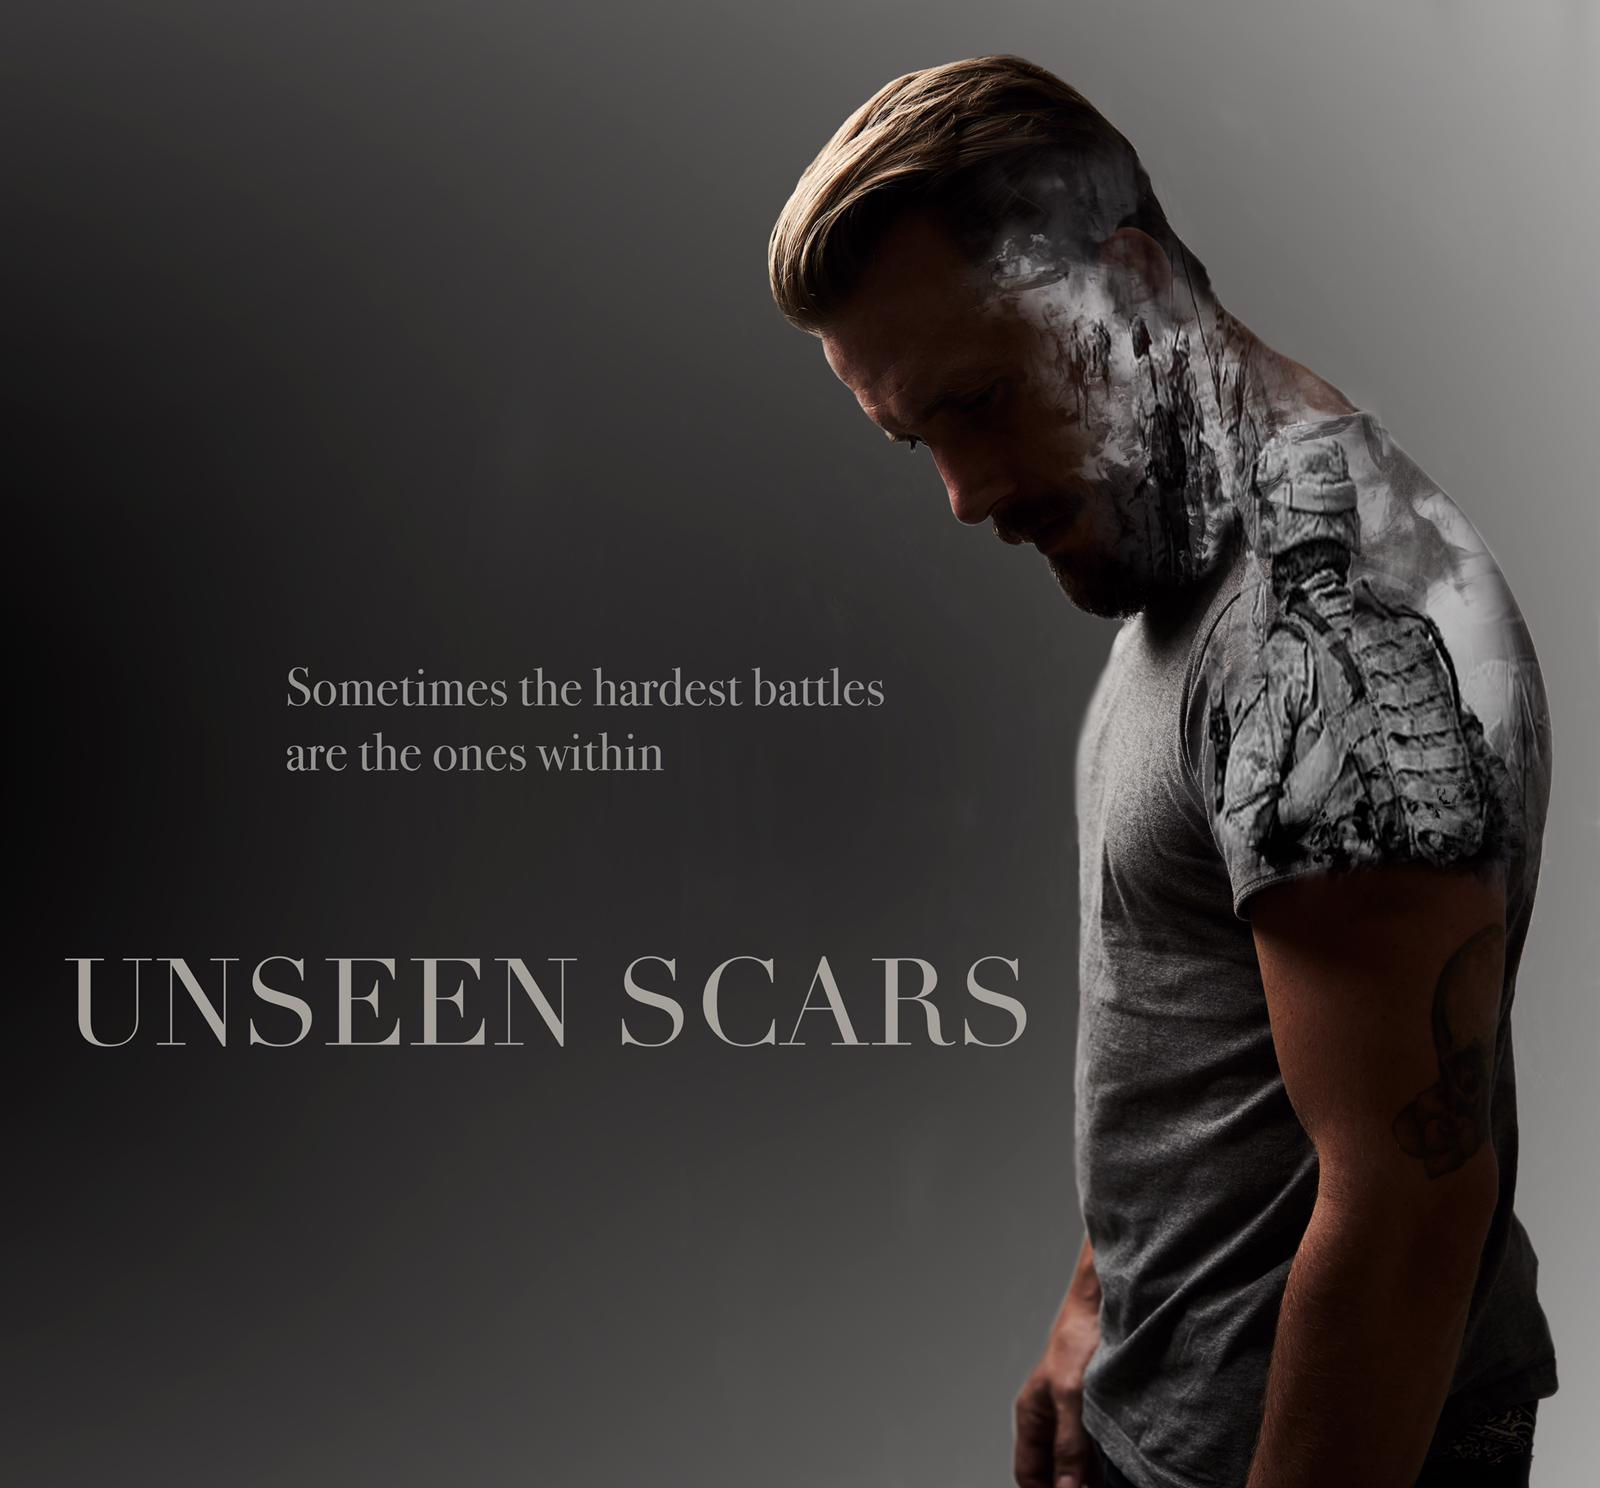 Unseen Scars image